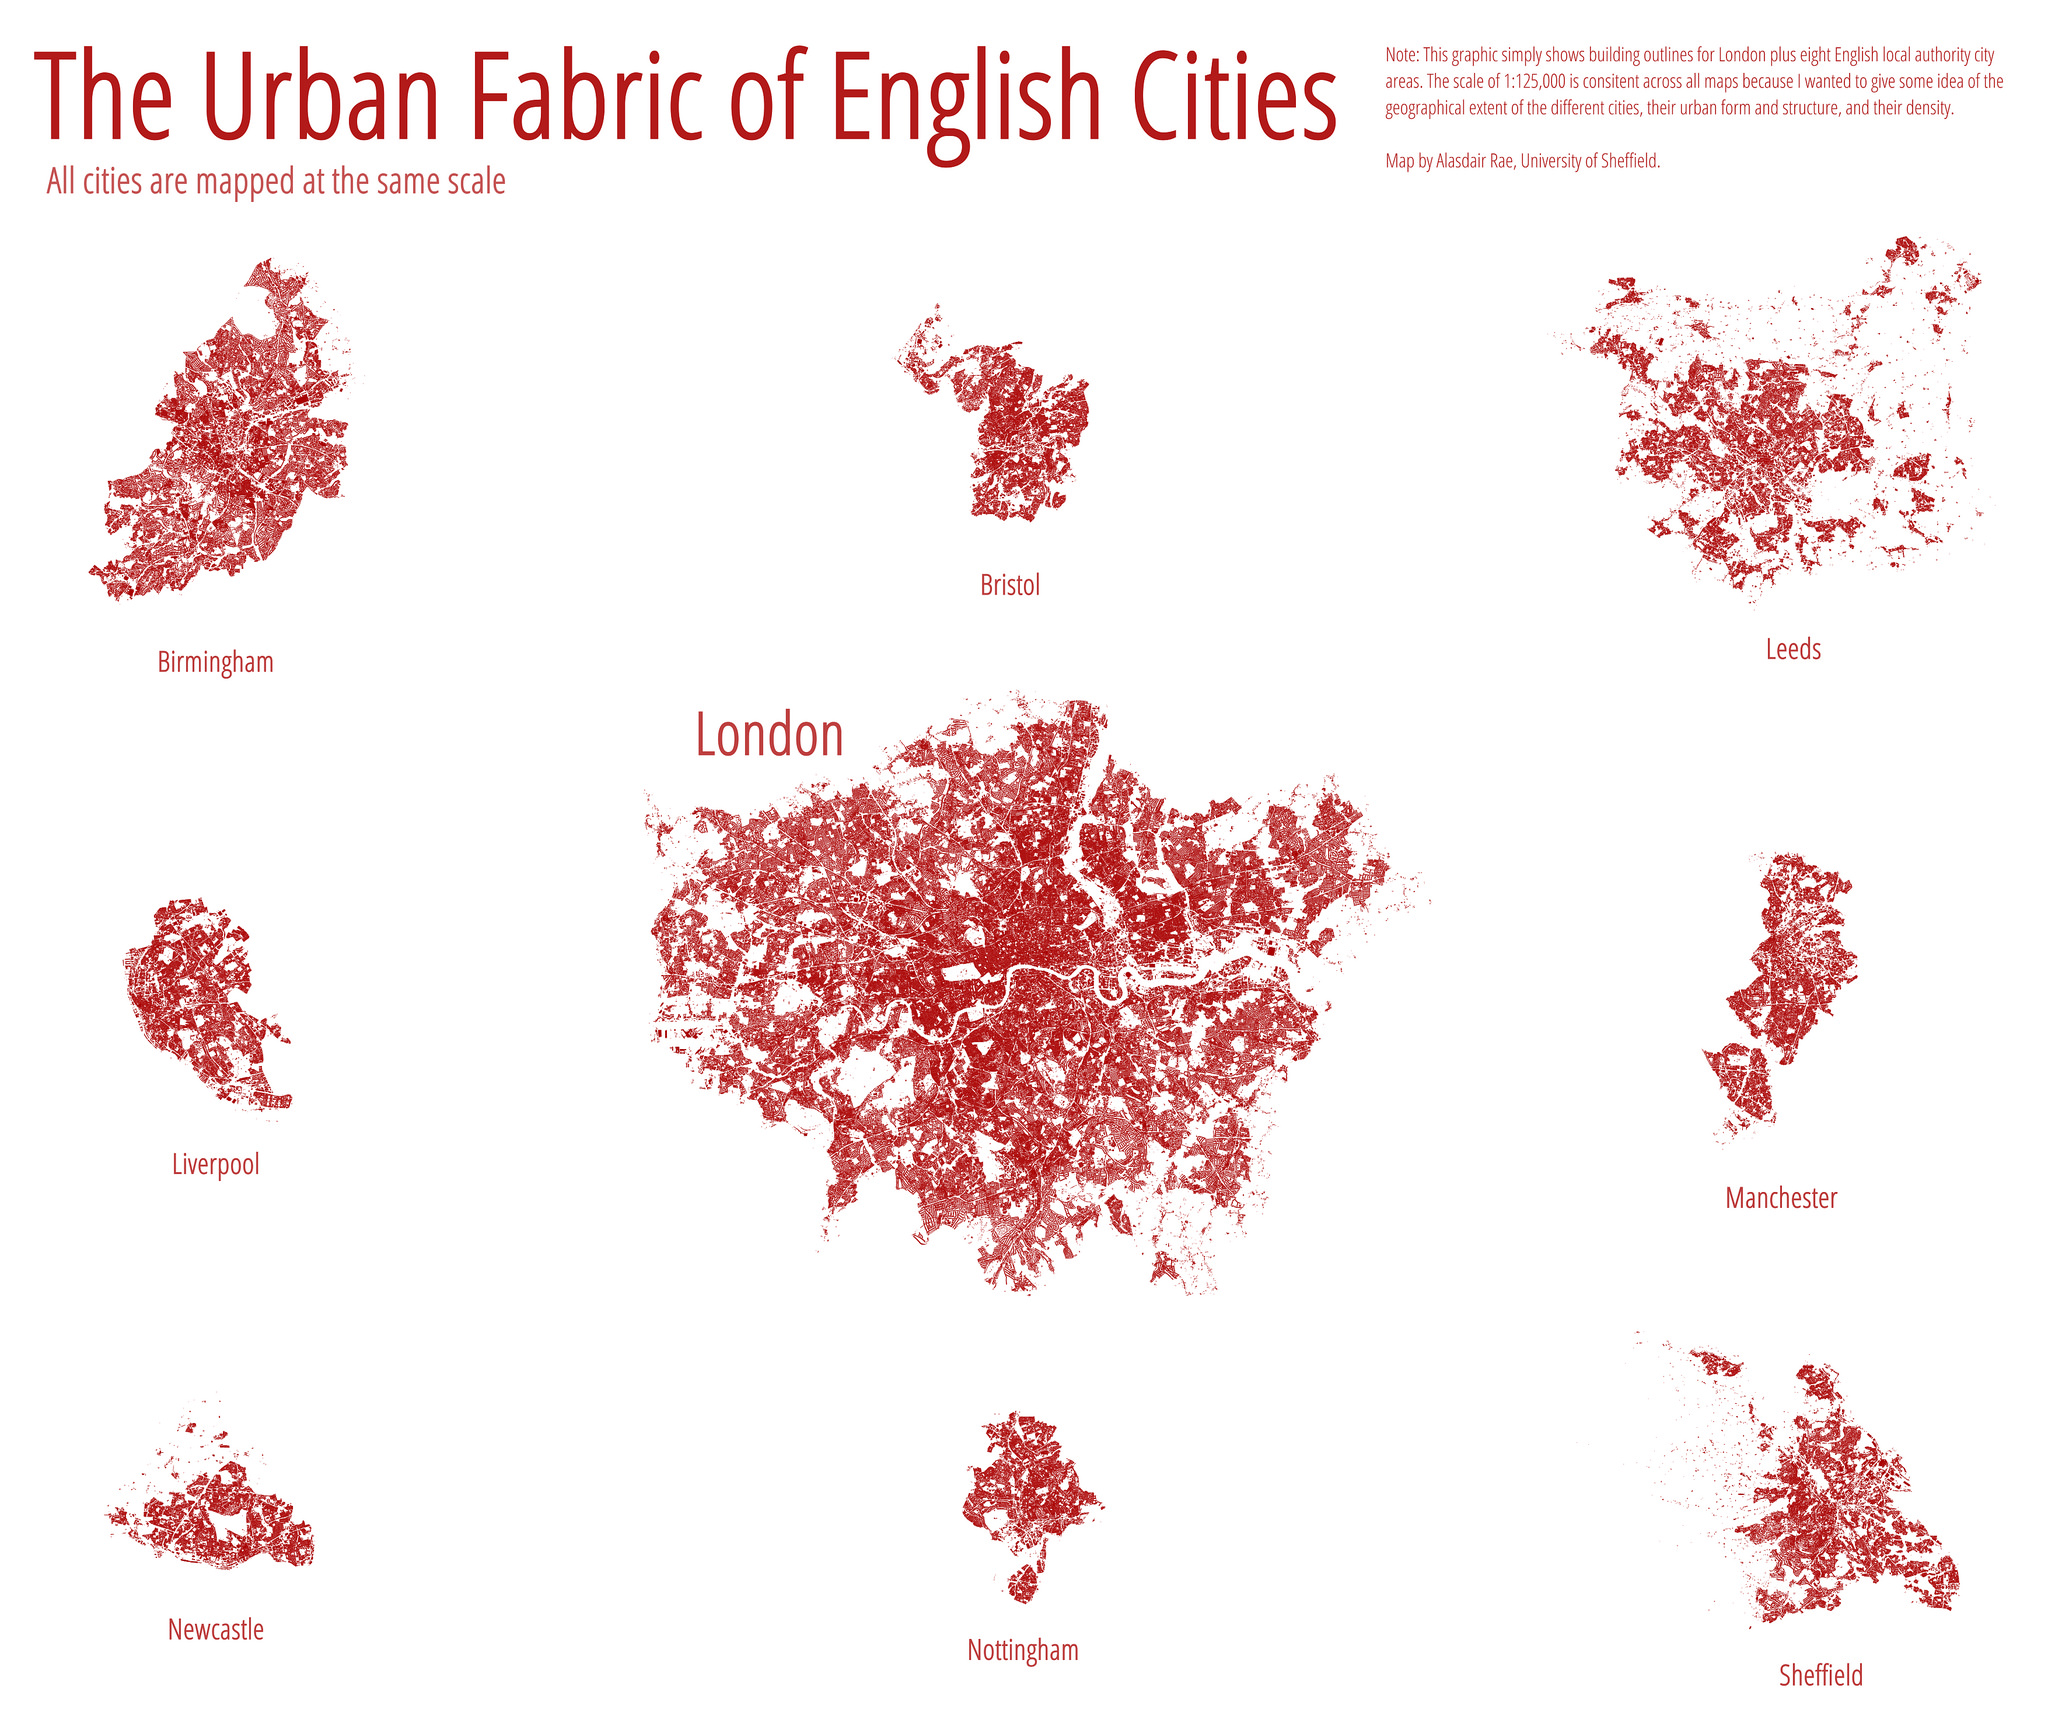 "Imagen de Alasdair Rae ""The Urban Fabric of English Cities  I created this image using the buildings layer from Ordnance Survey's Open Data VectorMap District product."" https://flic.kr/p/qixmSq"